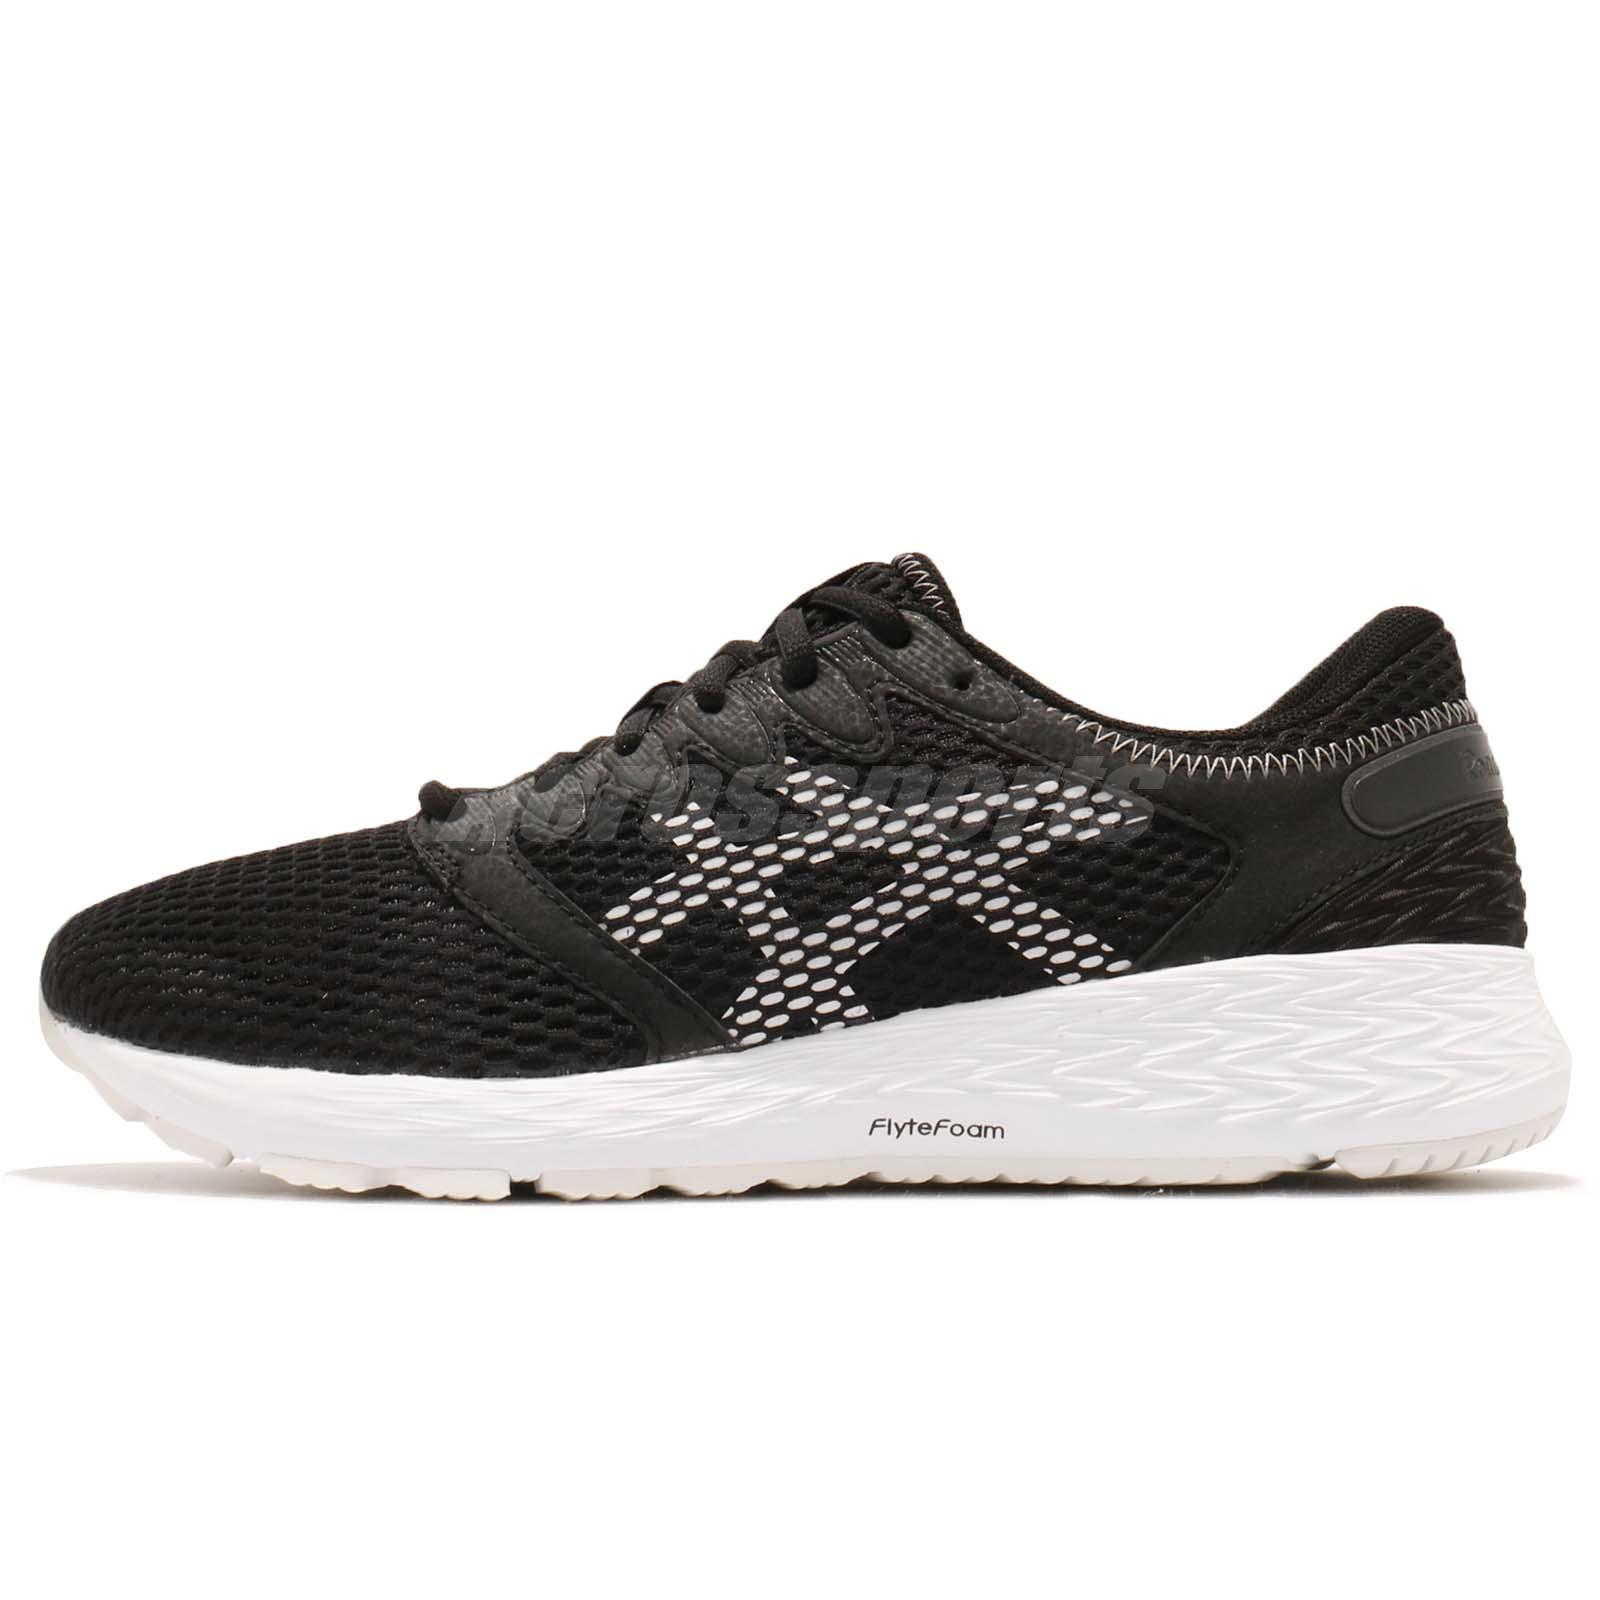 327ead32 Details about Asics RoadHawk FF2 Black White Men Running Casual Shoes  Sneakers 1011A136-001